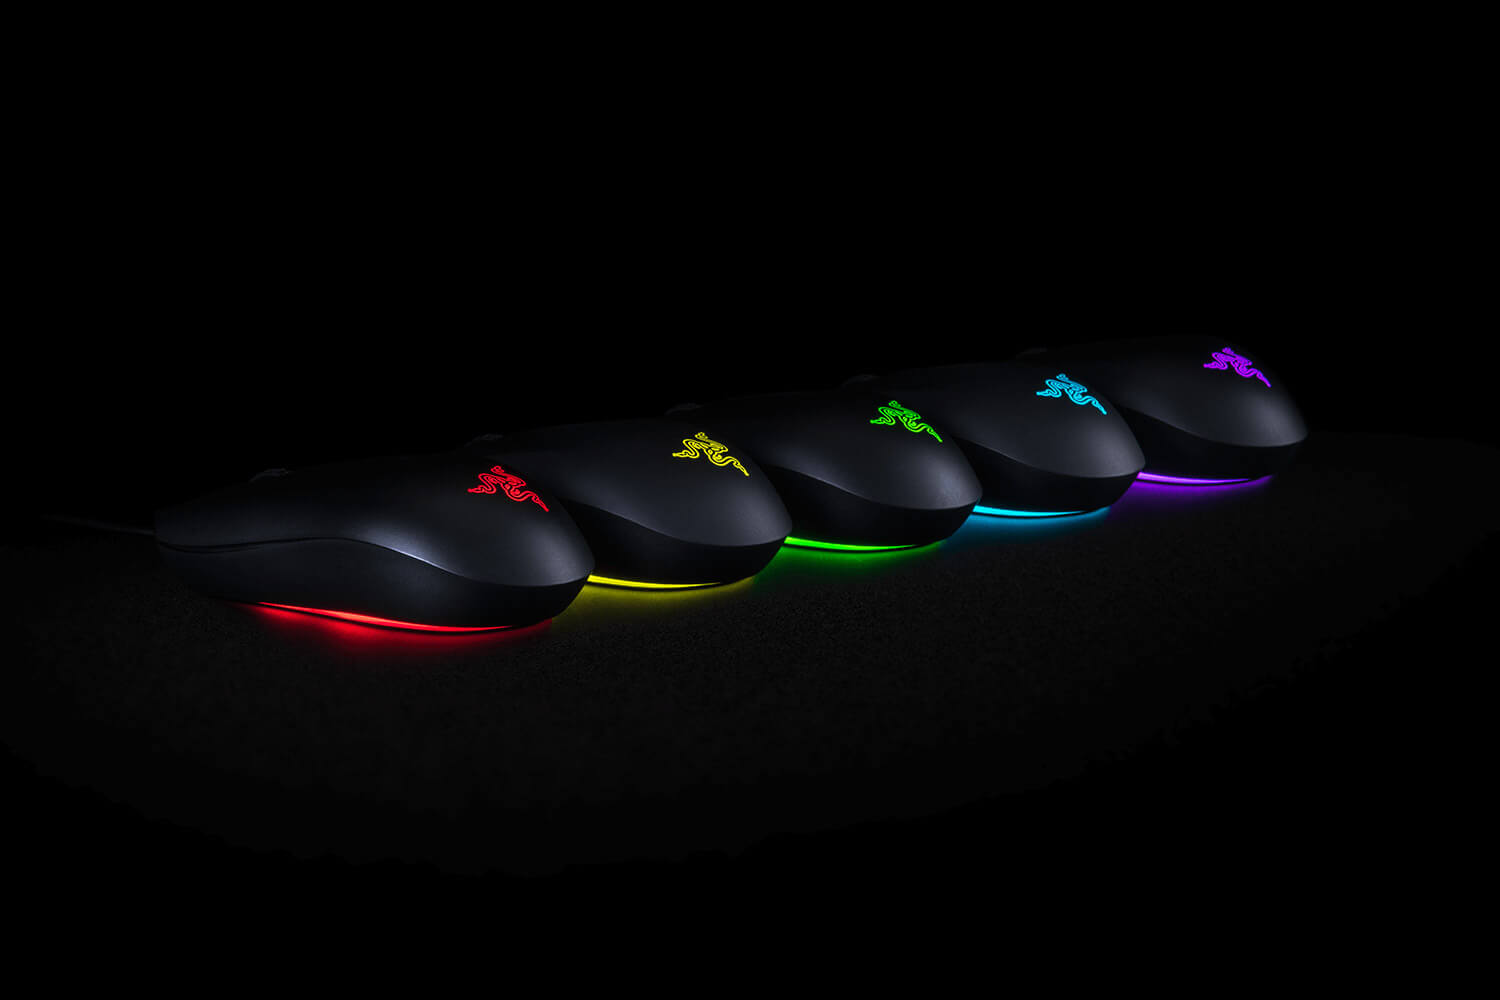 Razer Announces New Entry-Level Gaming Mouse Abyssus Essential